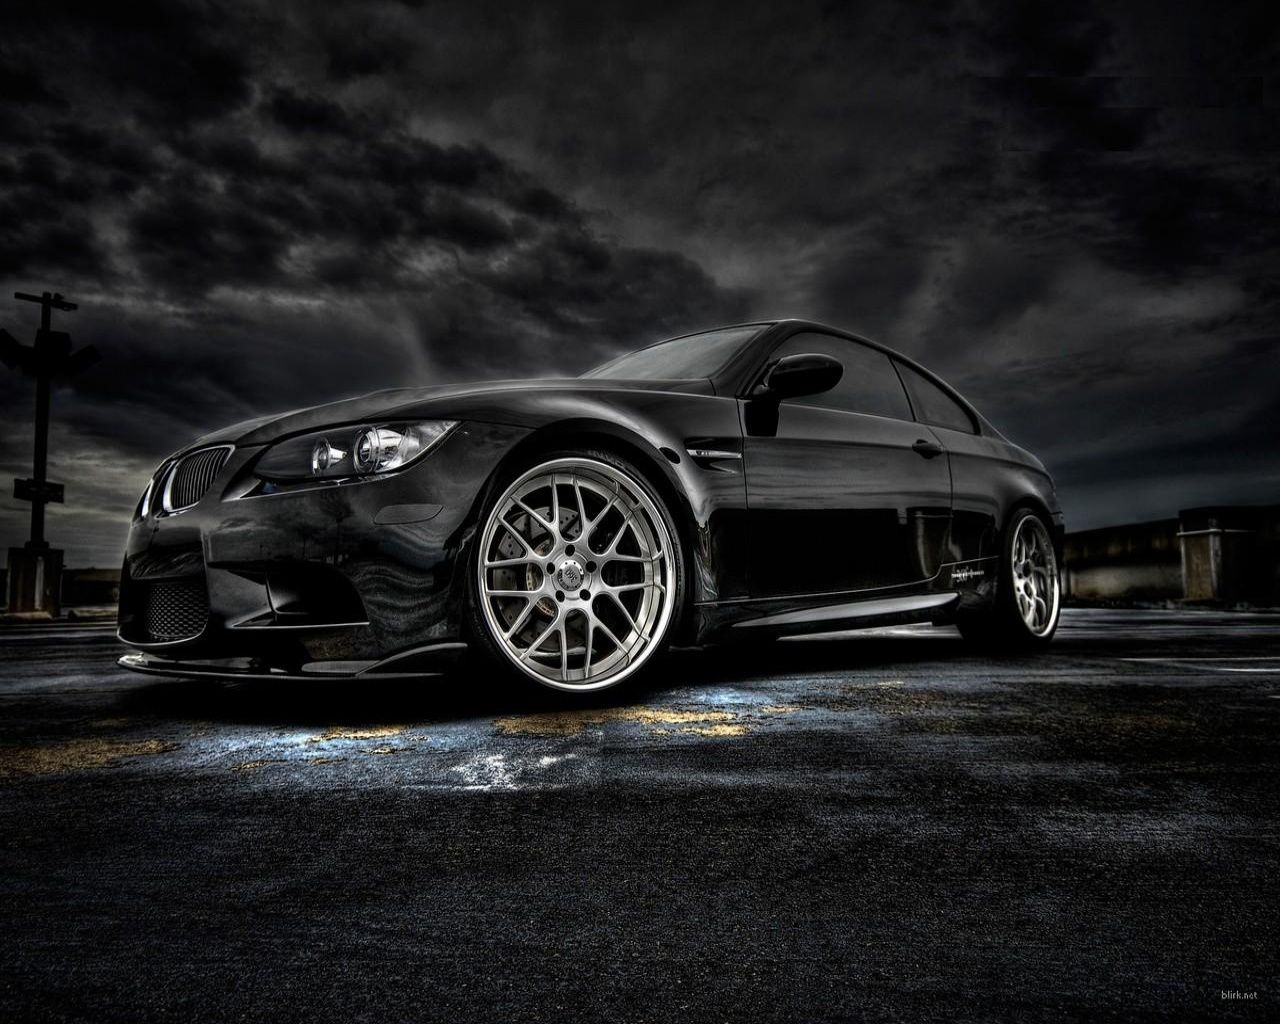 Bmw High Definition Cars Wallpapers Bmw Car Wallpaper Bmwhd